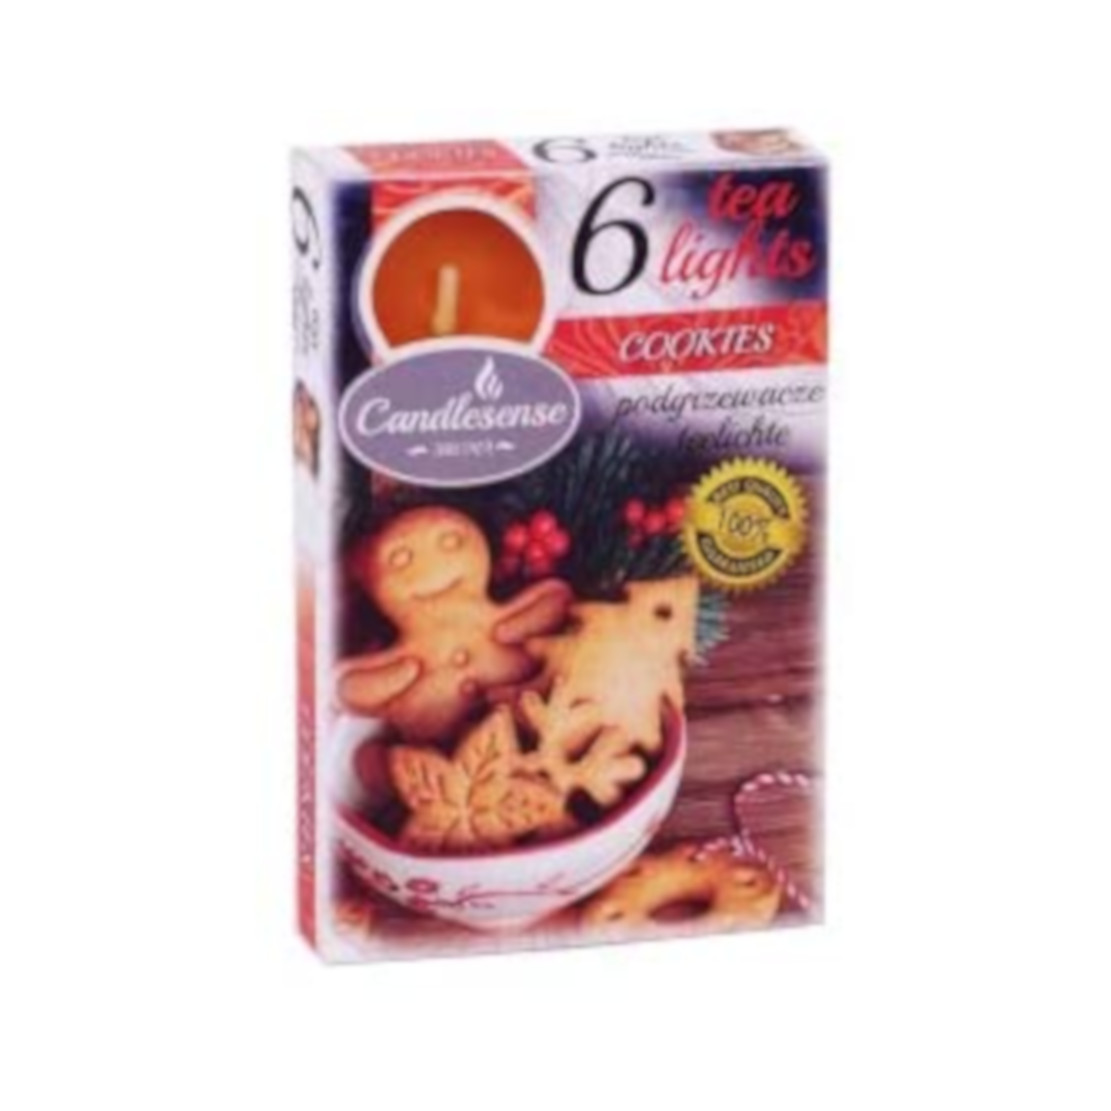 Candlesense Cookies Scented Tealights - Set of 6